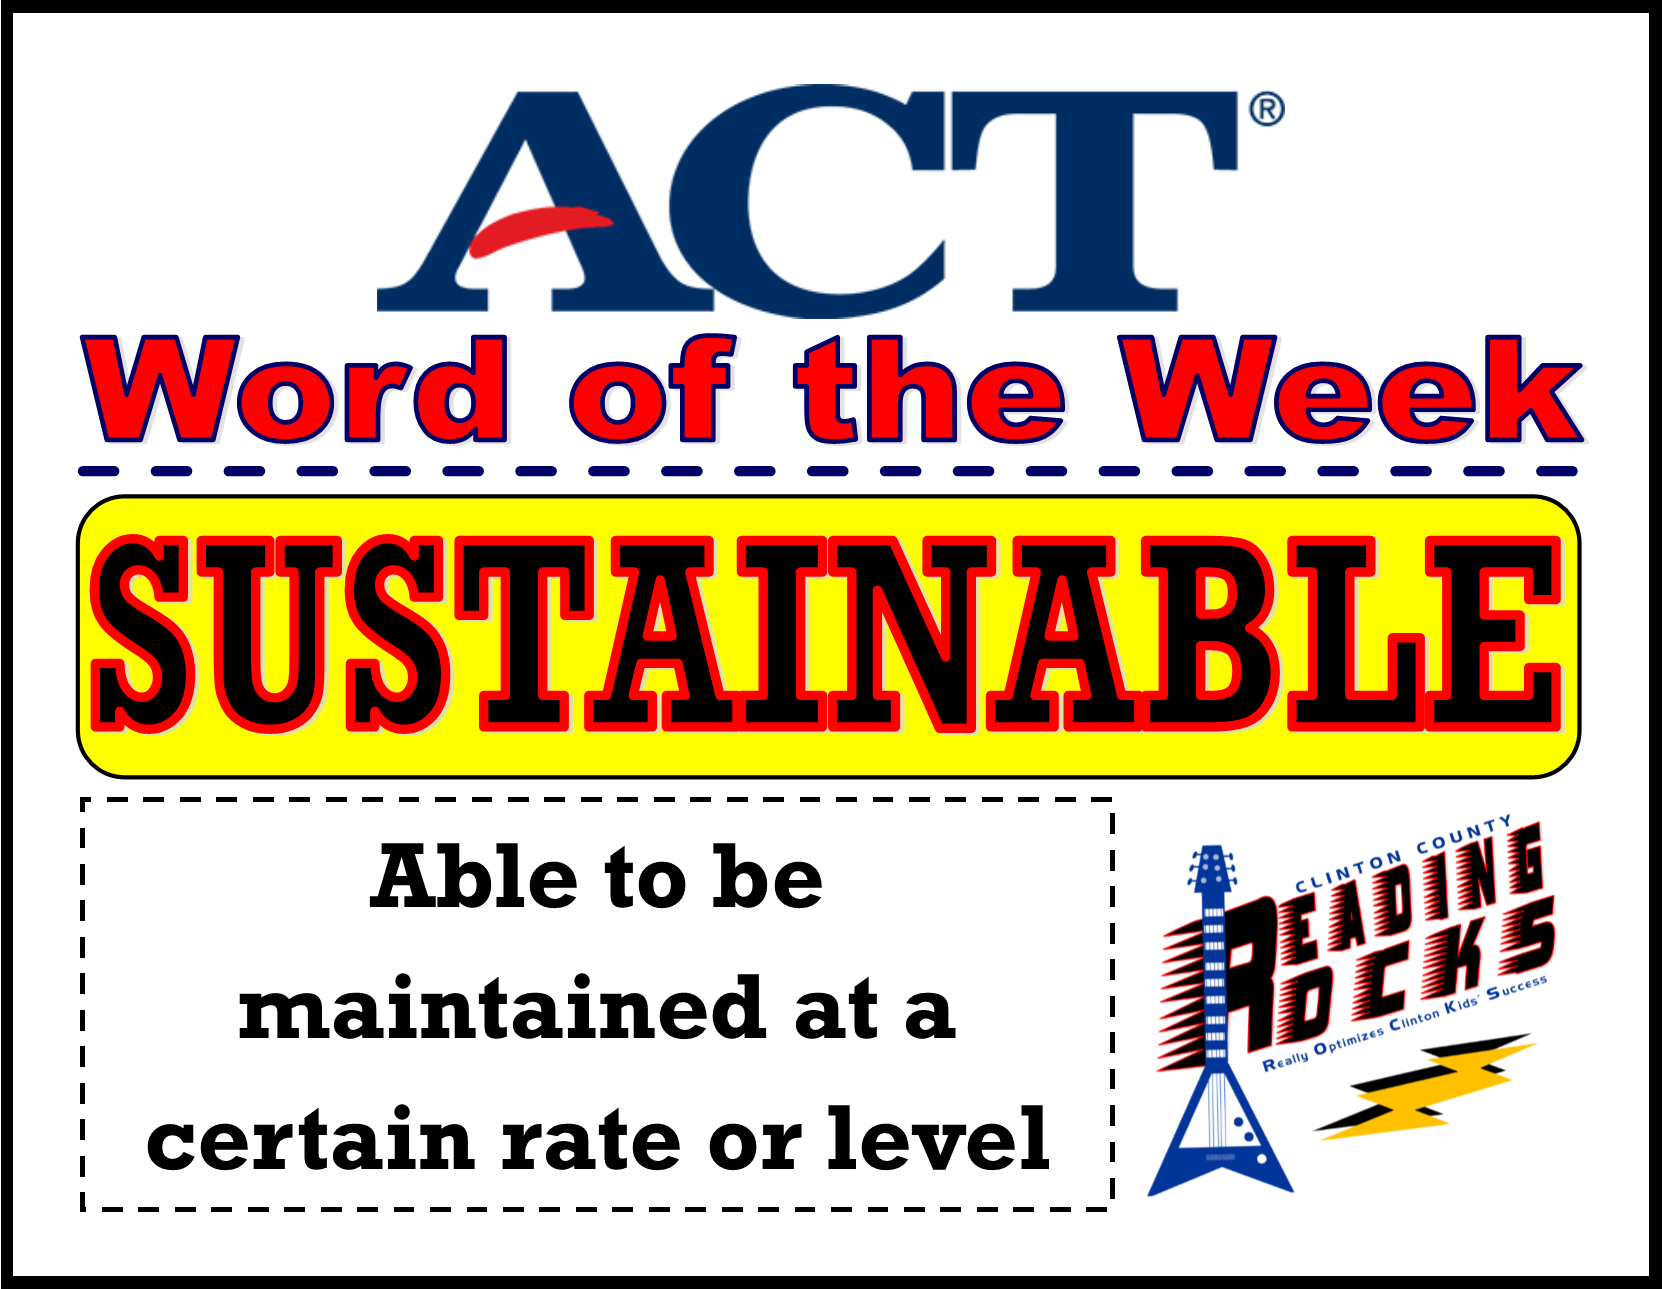 The CCHS Reading ROCKS ACT Word of the Week is - SUSTAINABLE!